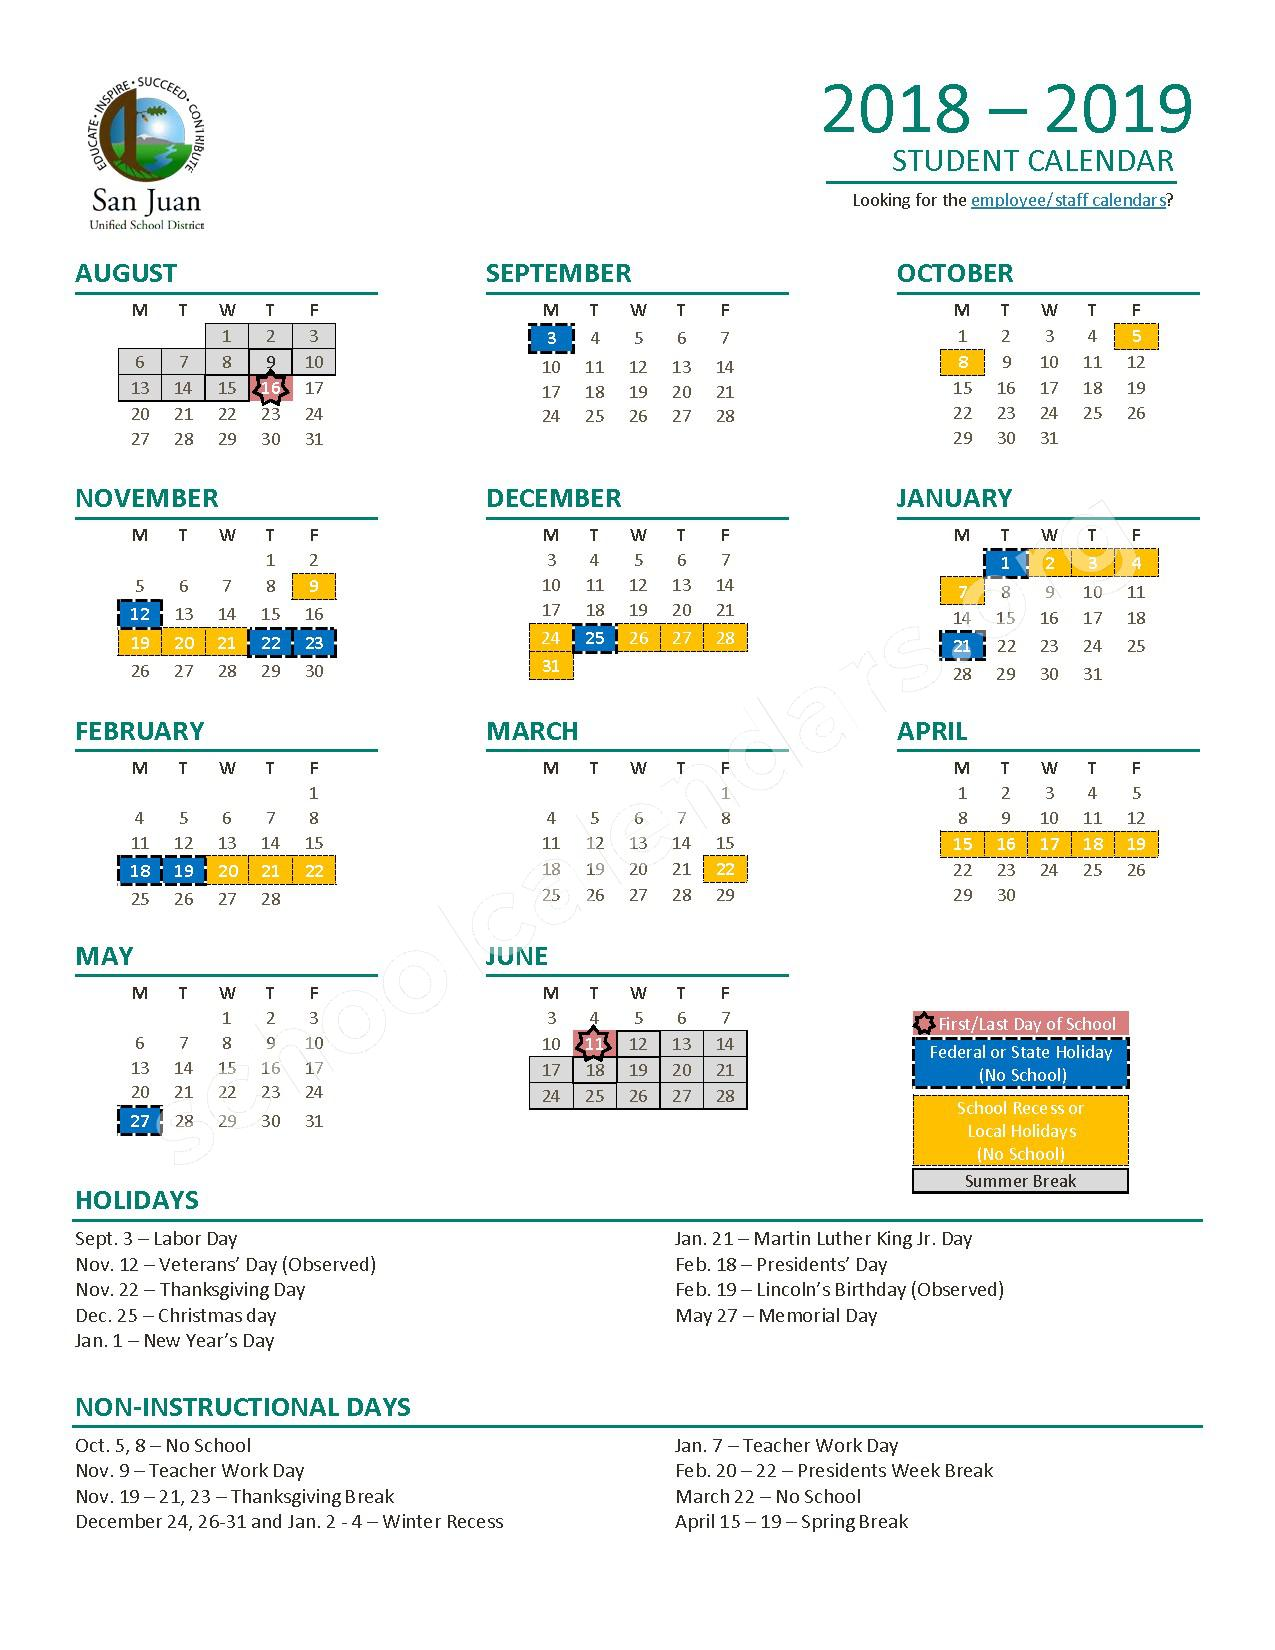 2018 - 2019 Student Calendar – San Juan Unified School District - Sacramento County School District – page 1